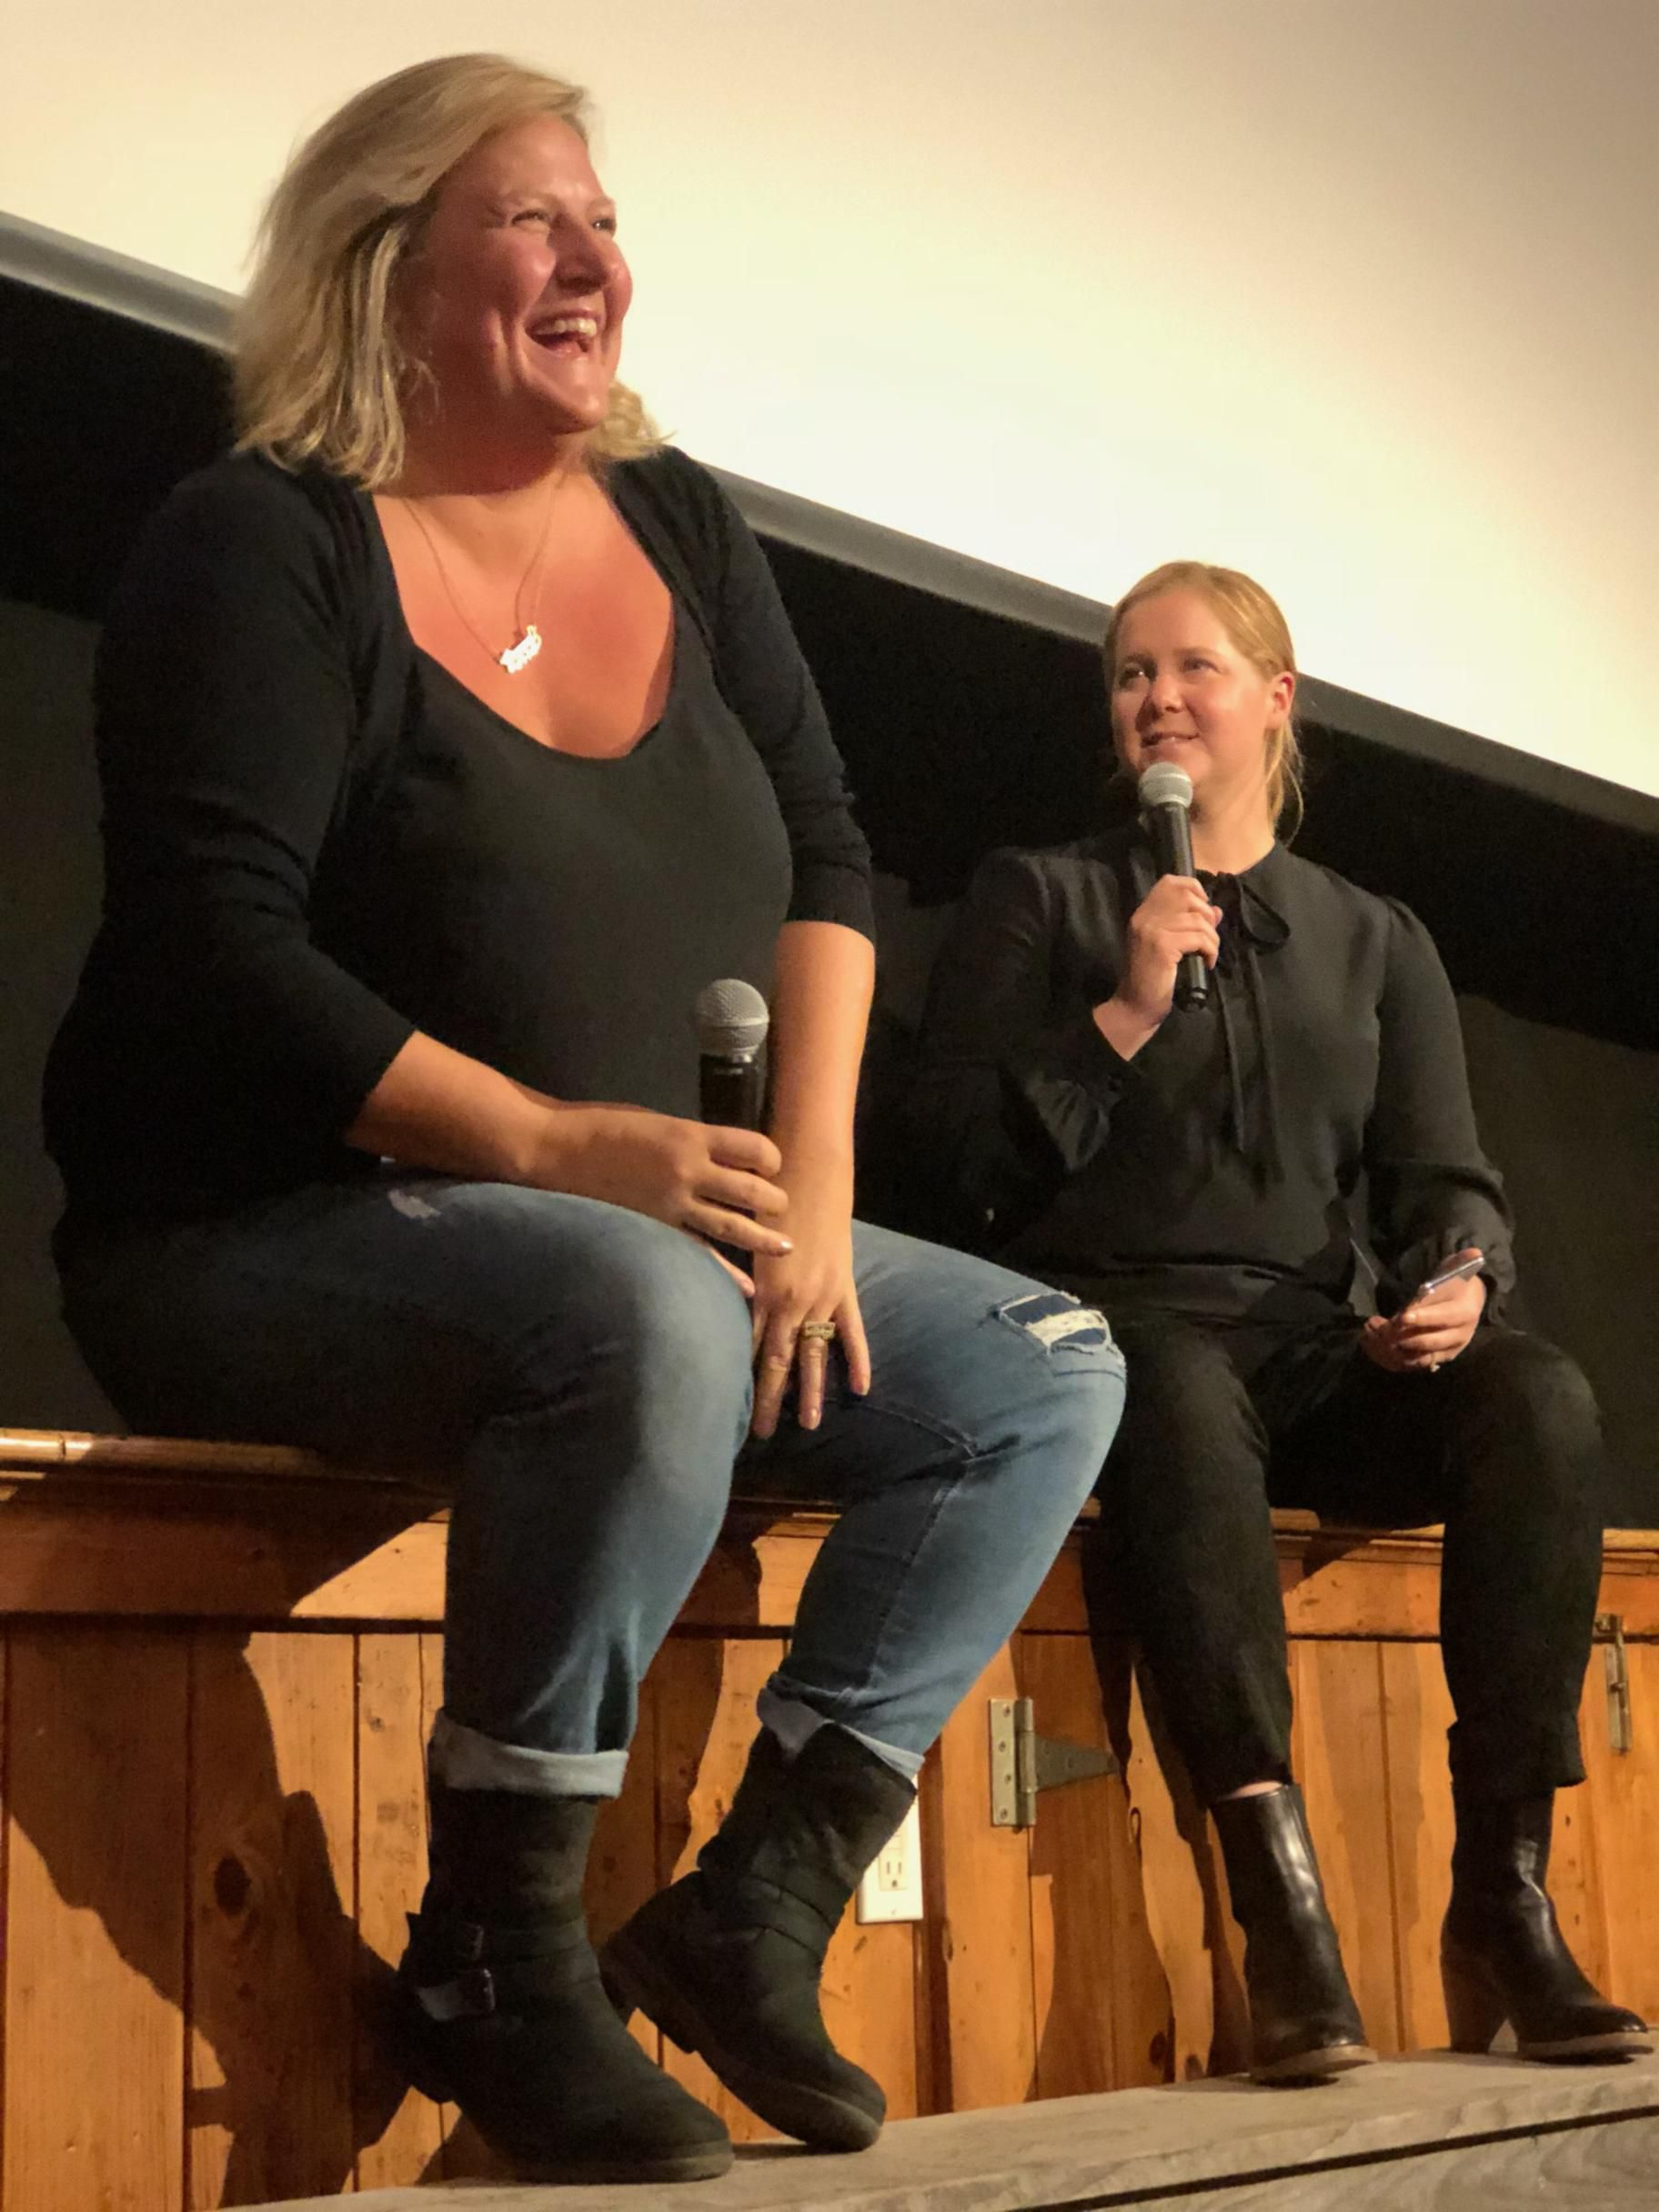 Amy Schumer Makes An Appearance At The Martha S Vineyard Film Festival The Boston Globe